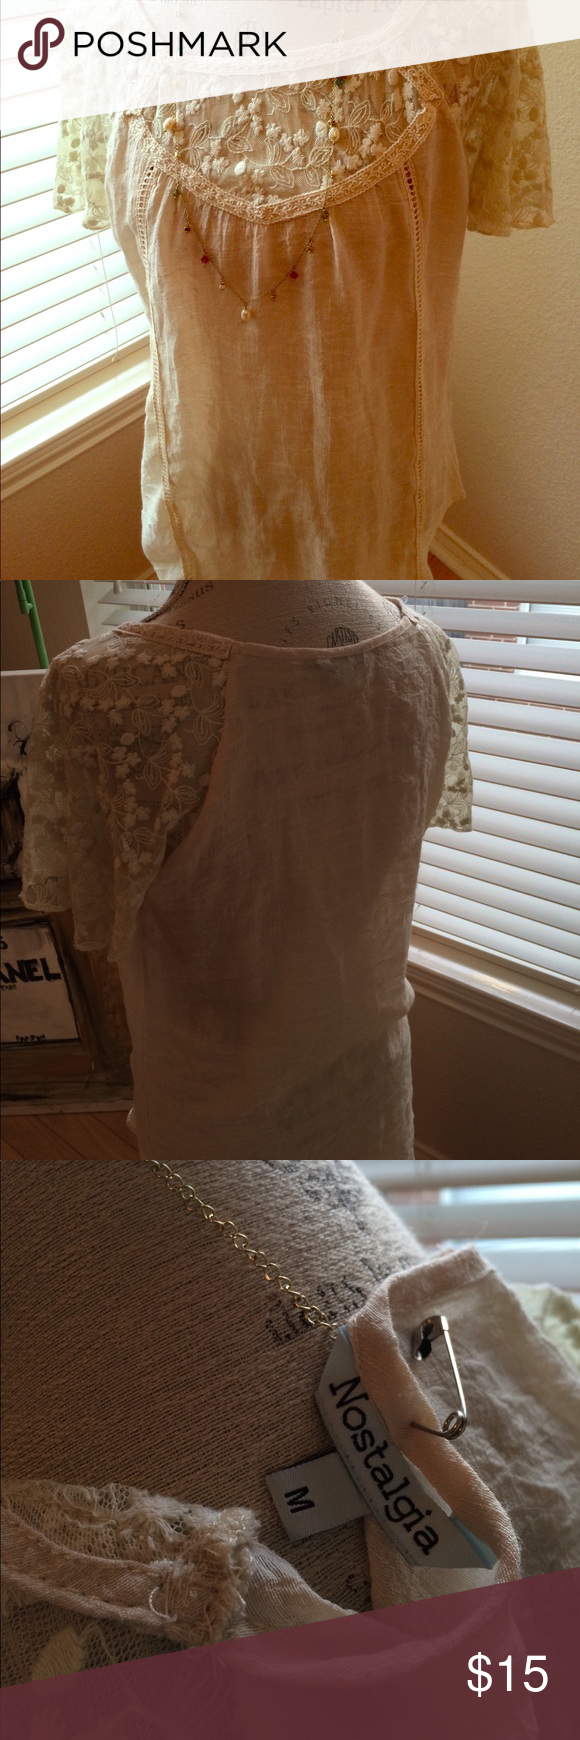 Nostalgia Sheer Lace Blouse Beautiful Lace top Blouse top of blouse and sleeves  are lace . Medium size Nostalgia Tops Blouses